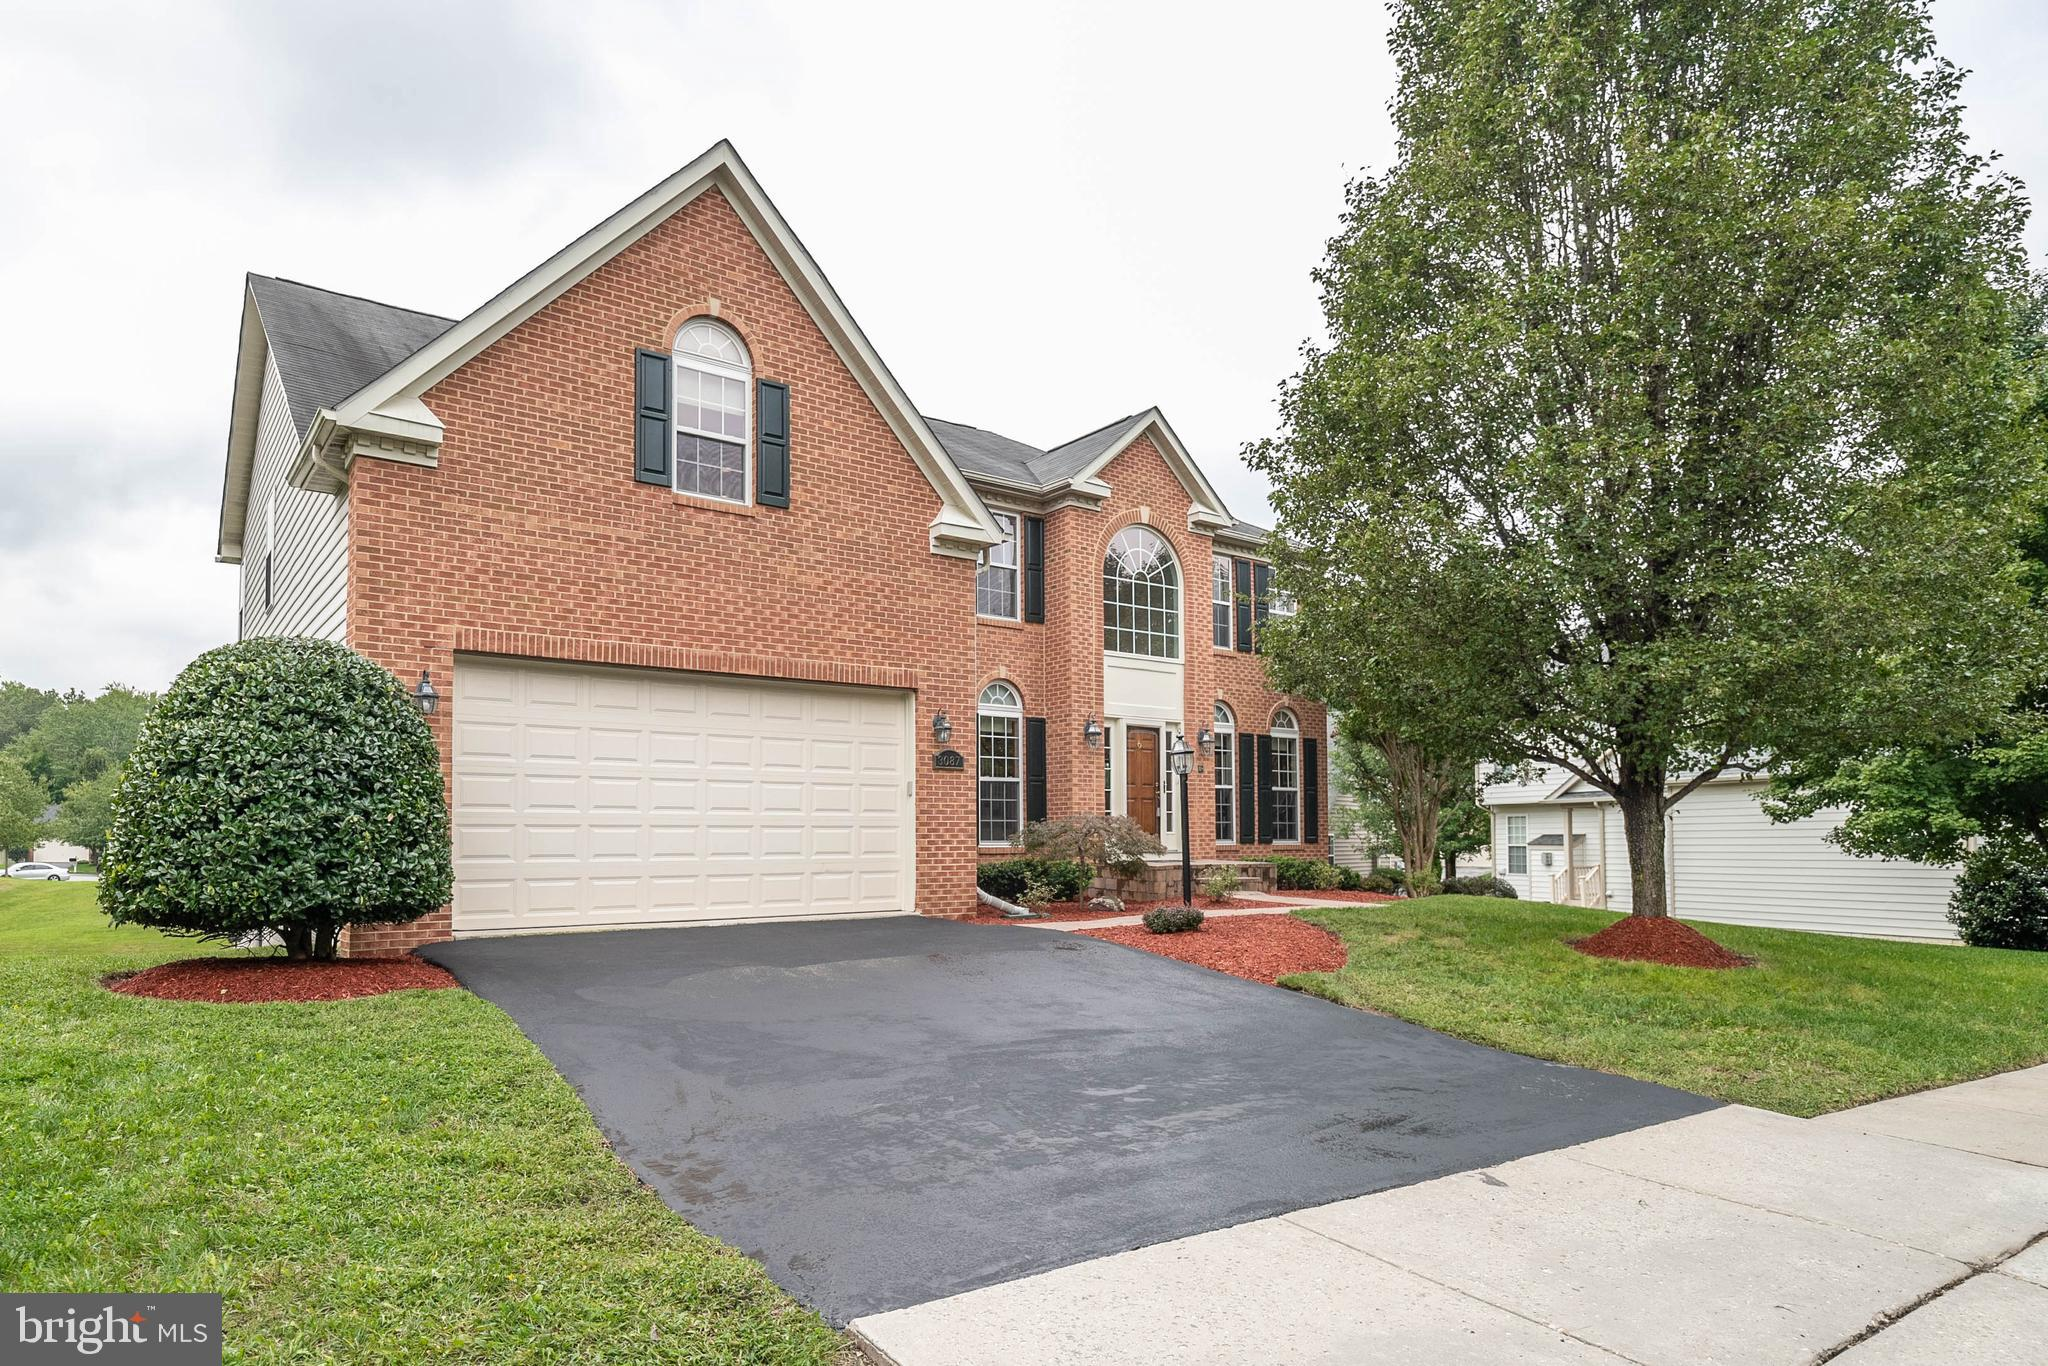 Spacious, well-maintained home with 3 finished levels, 4 bedrooms, and 4.5 bathrooms. The main level